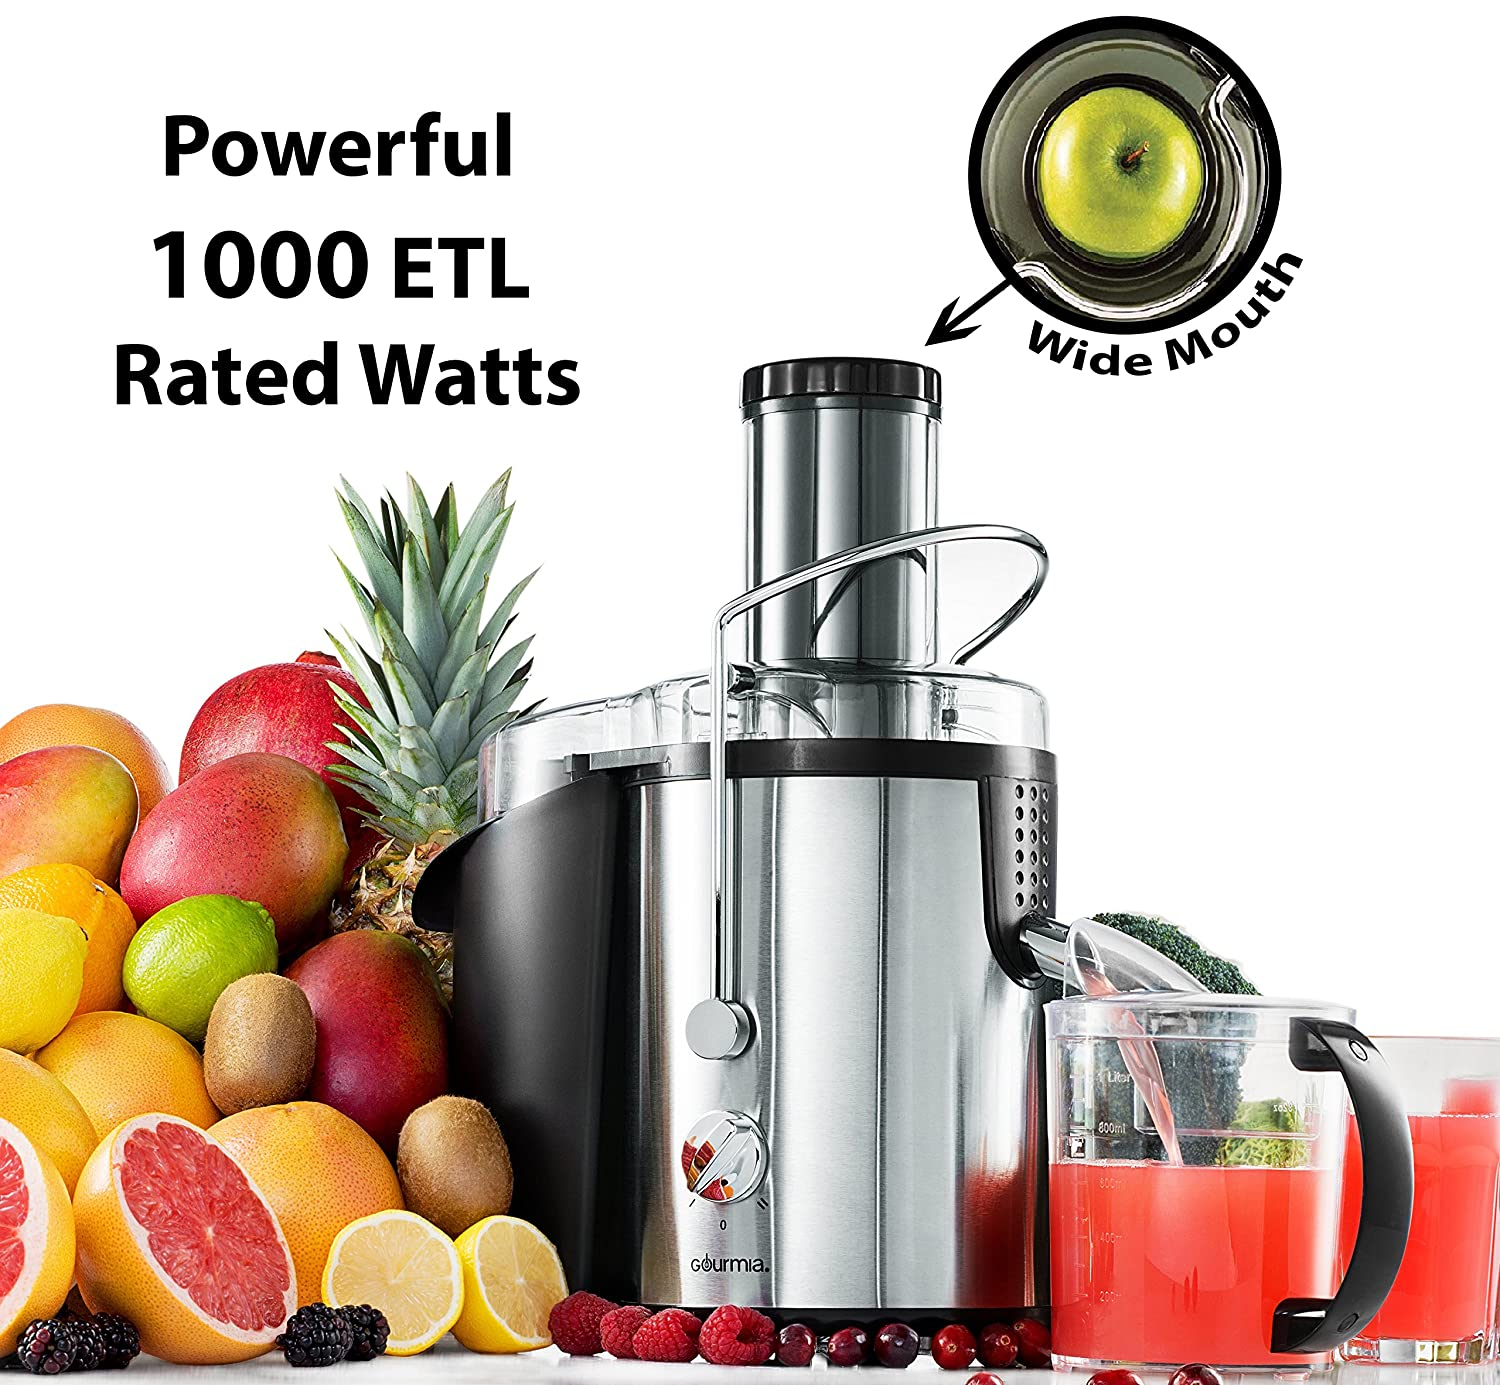 Gourmia GJ750 Wide Mouth Fruit Centrifugal Juicer 750 Watts Juice Extractor with Multiple Settings, Stainless Steel - Includes Free E-Recipe Book - 110V GJ-750